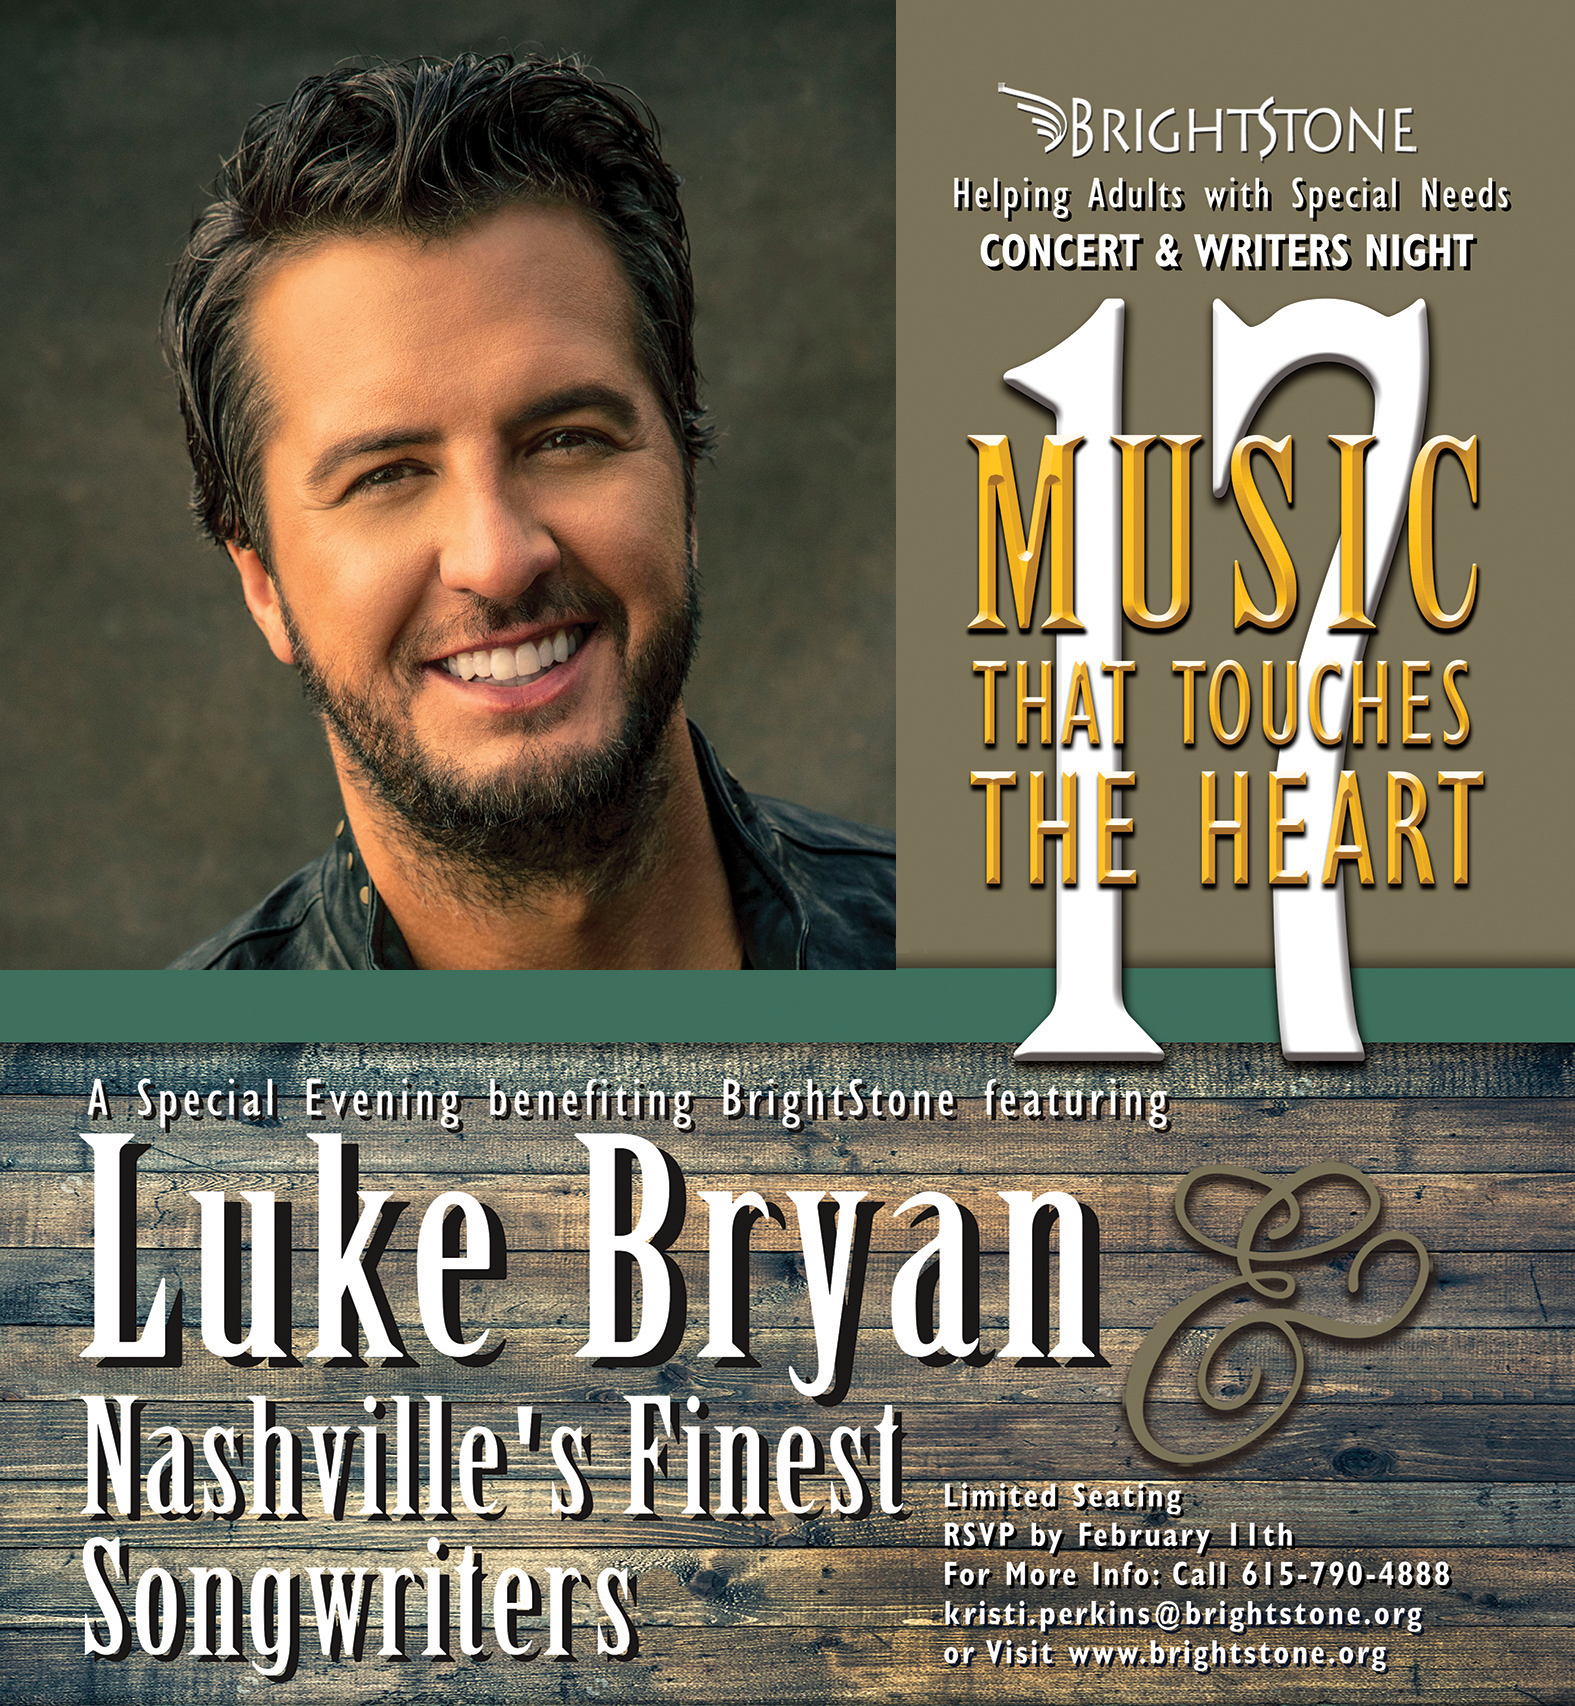 17th Annual Music That Touches the Heart featuring Luke Bryan, Feb. 19th 2019, Save the Date!